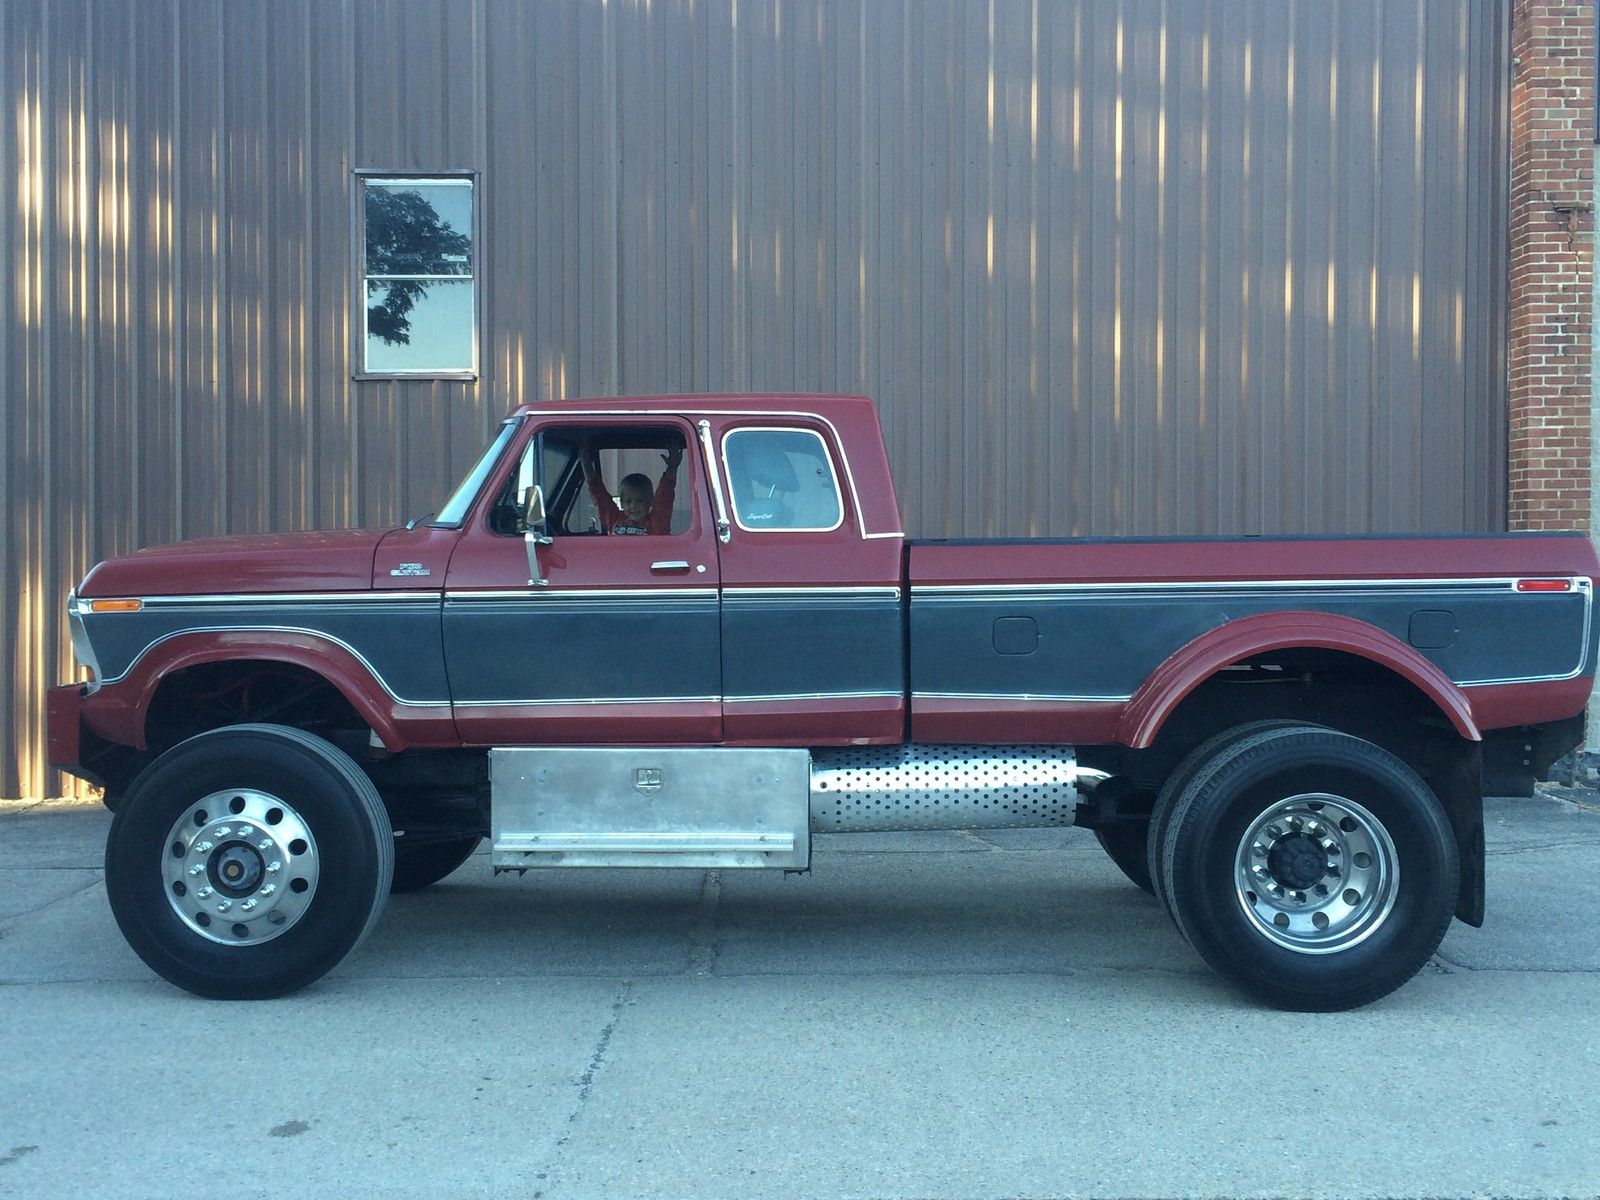 1978 Ford F250 A Real Highboy 5.9L Cummins Diesel 2.jpg